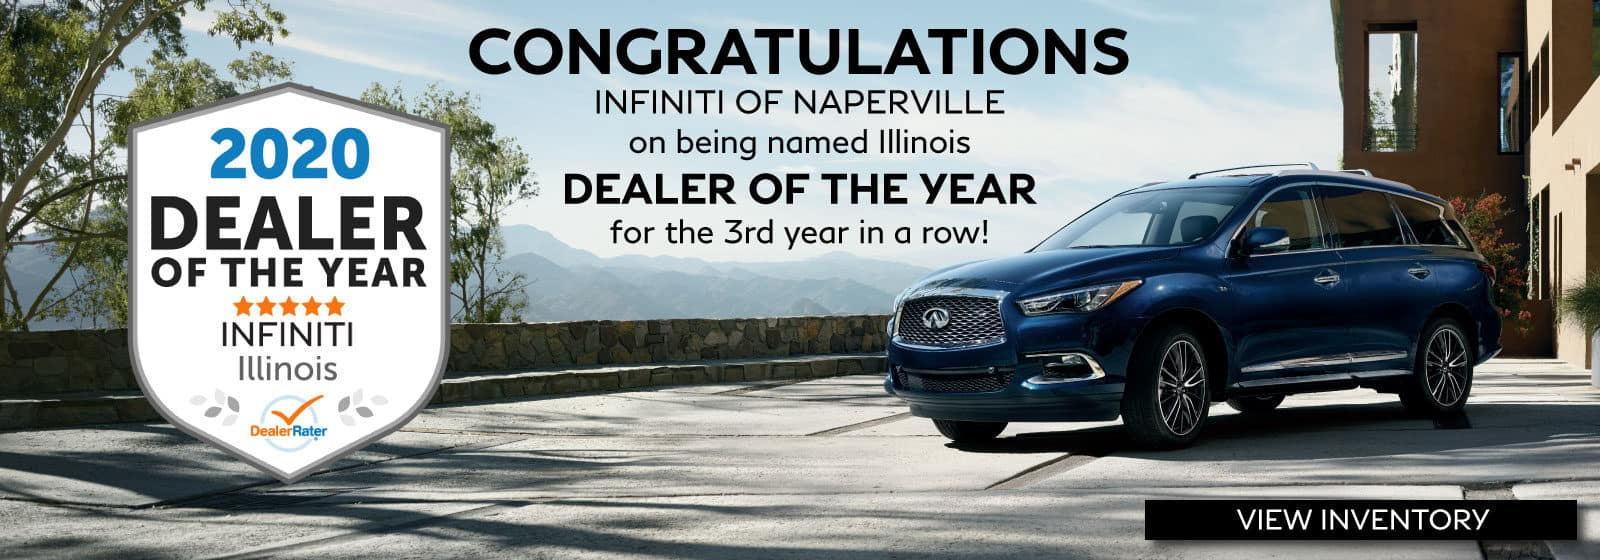 INFINITI of Naperville: 2020 Dealer of the year Award